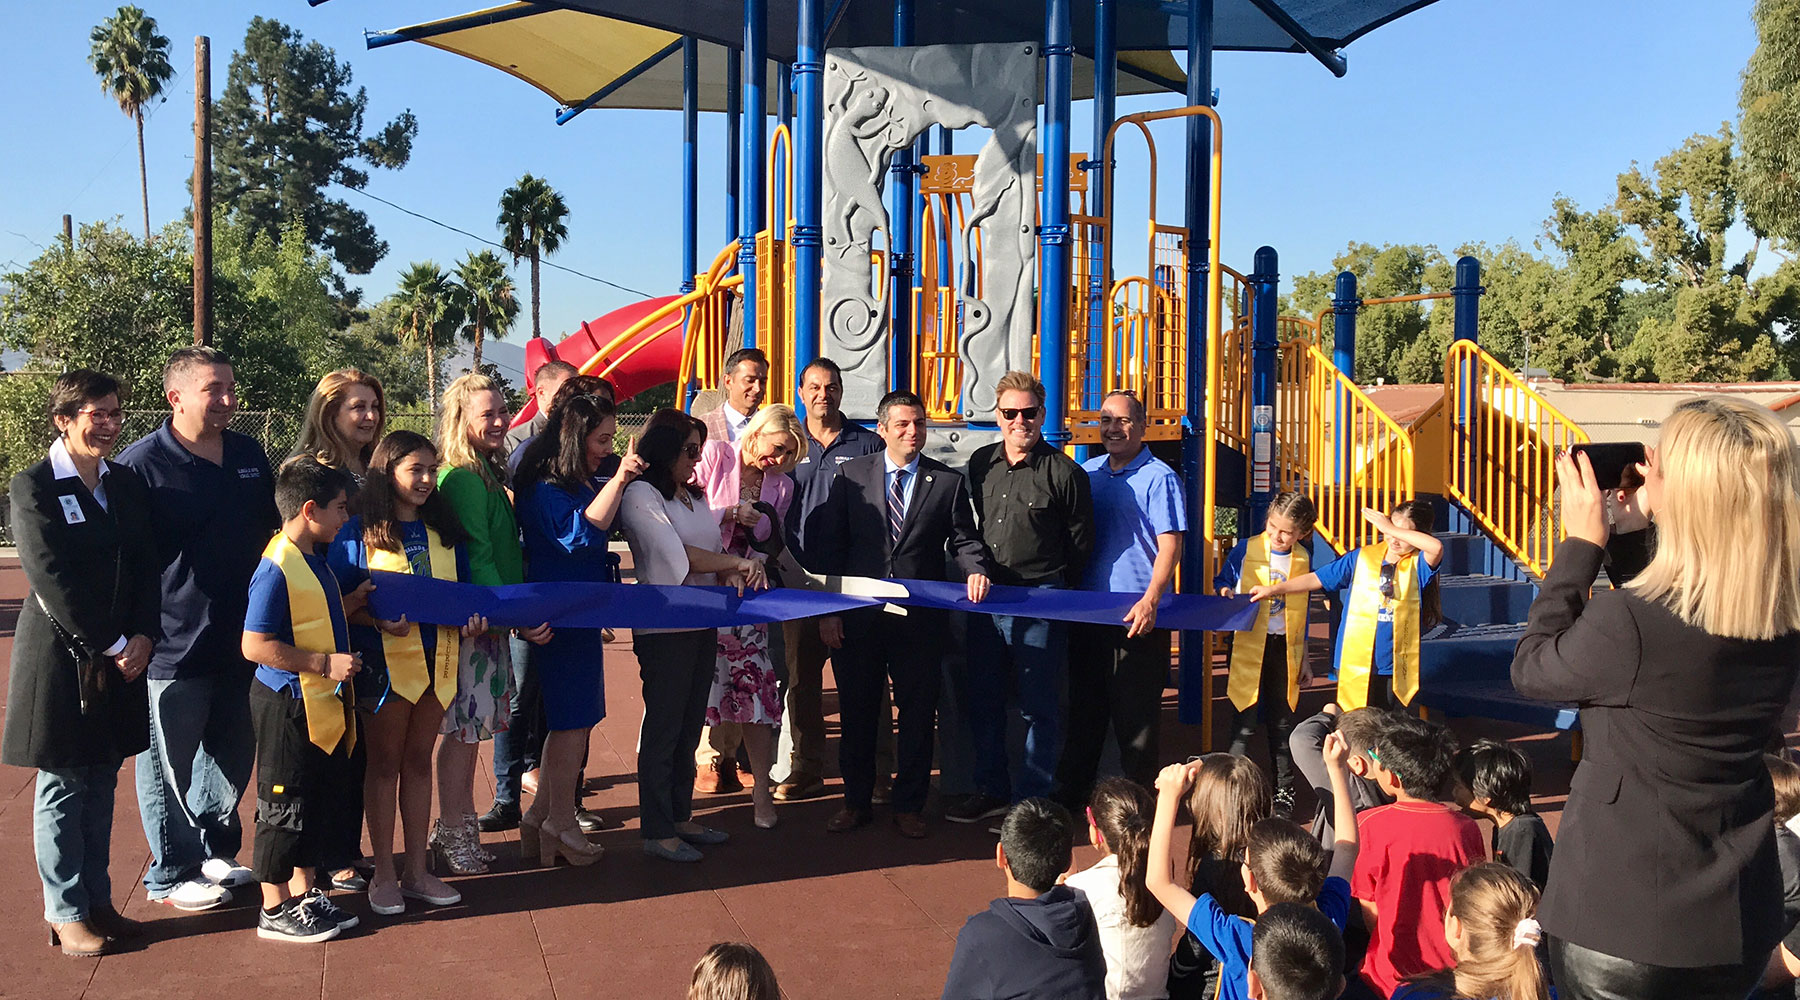 Balboa Elementary School Playground Ribbon Cutting Ceremony